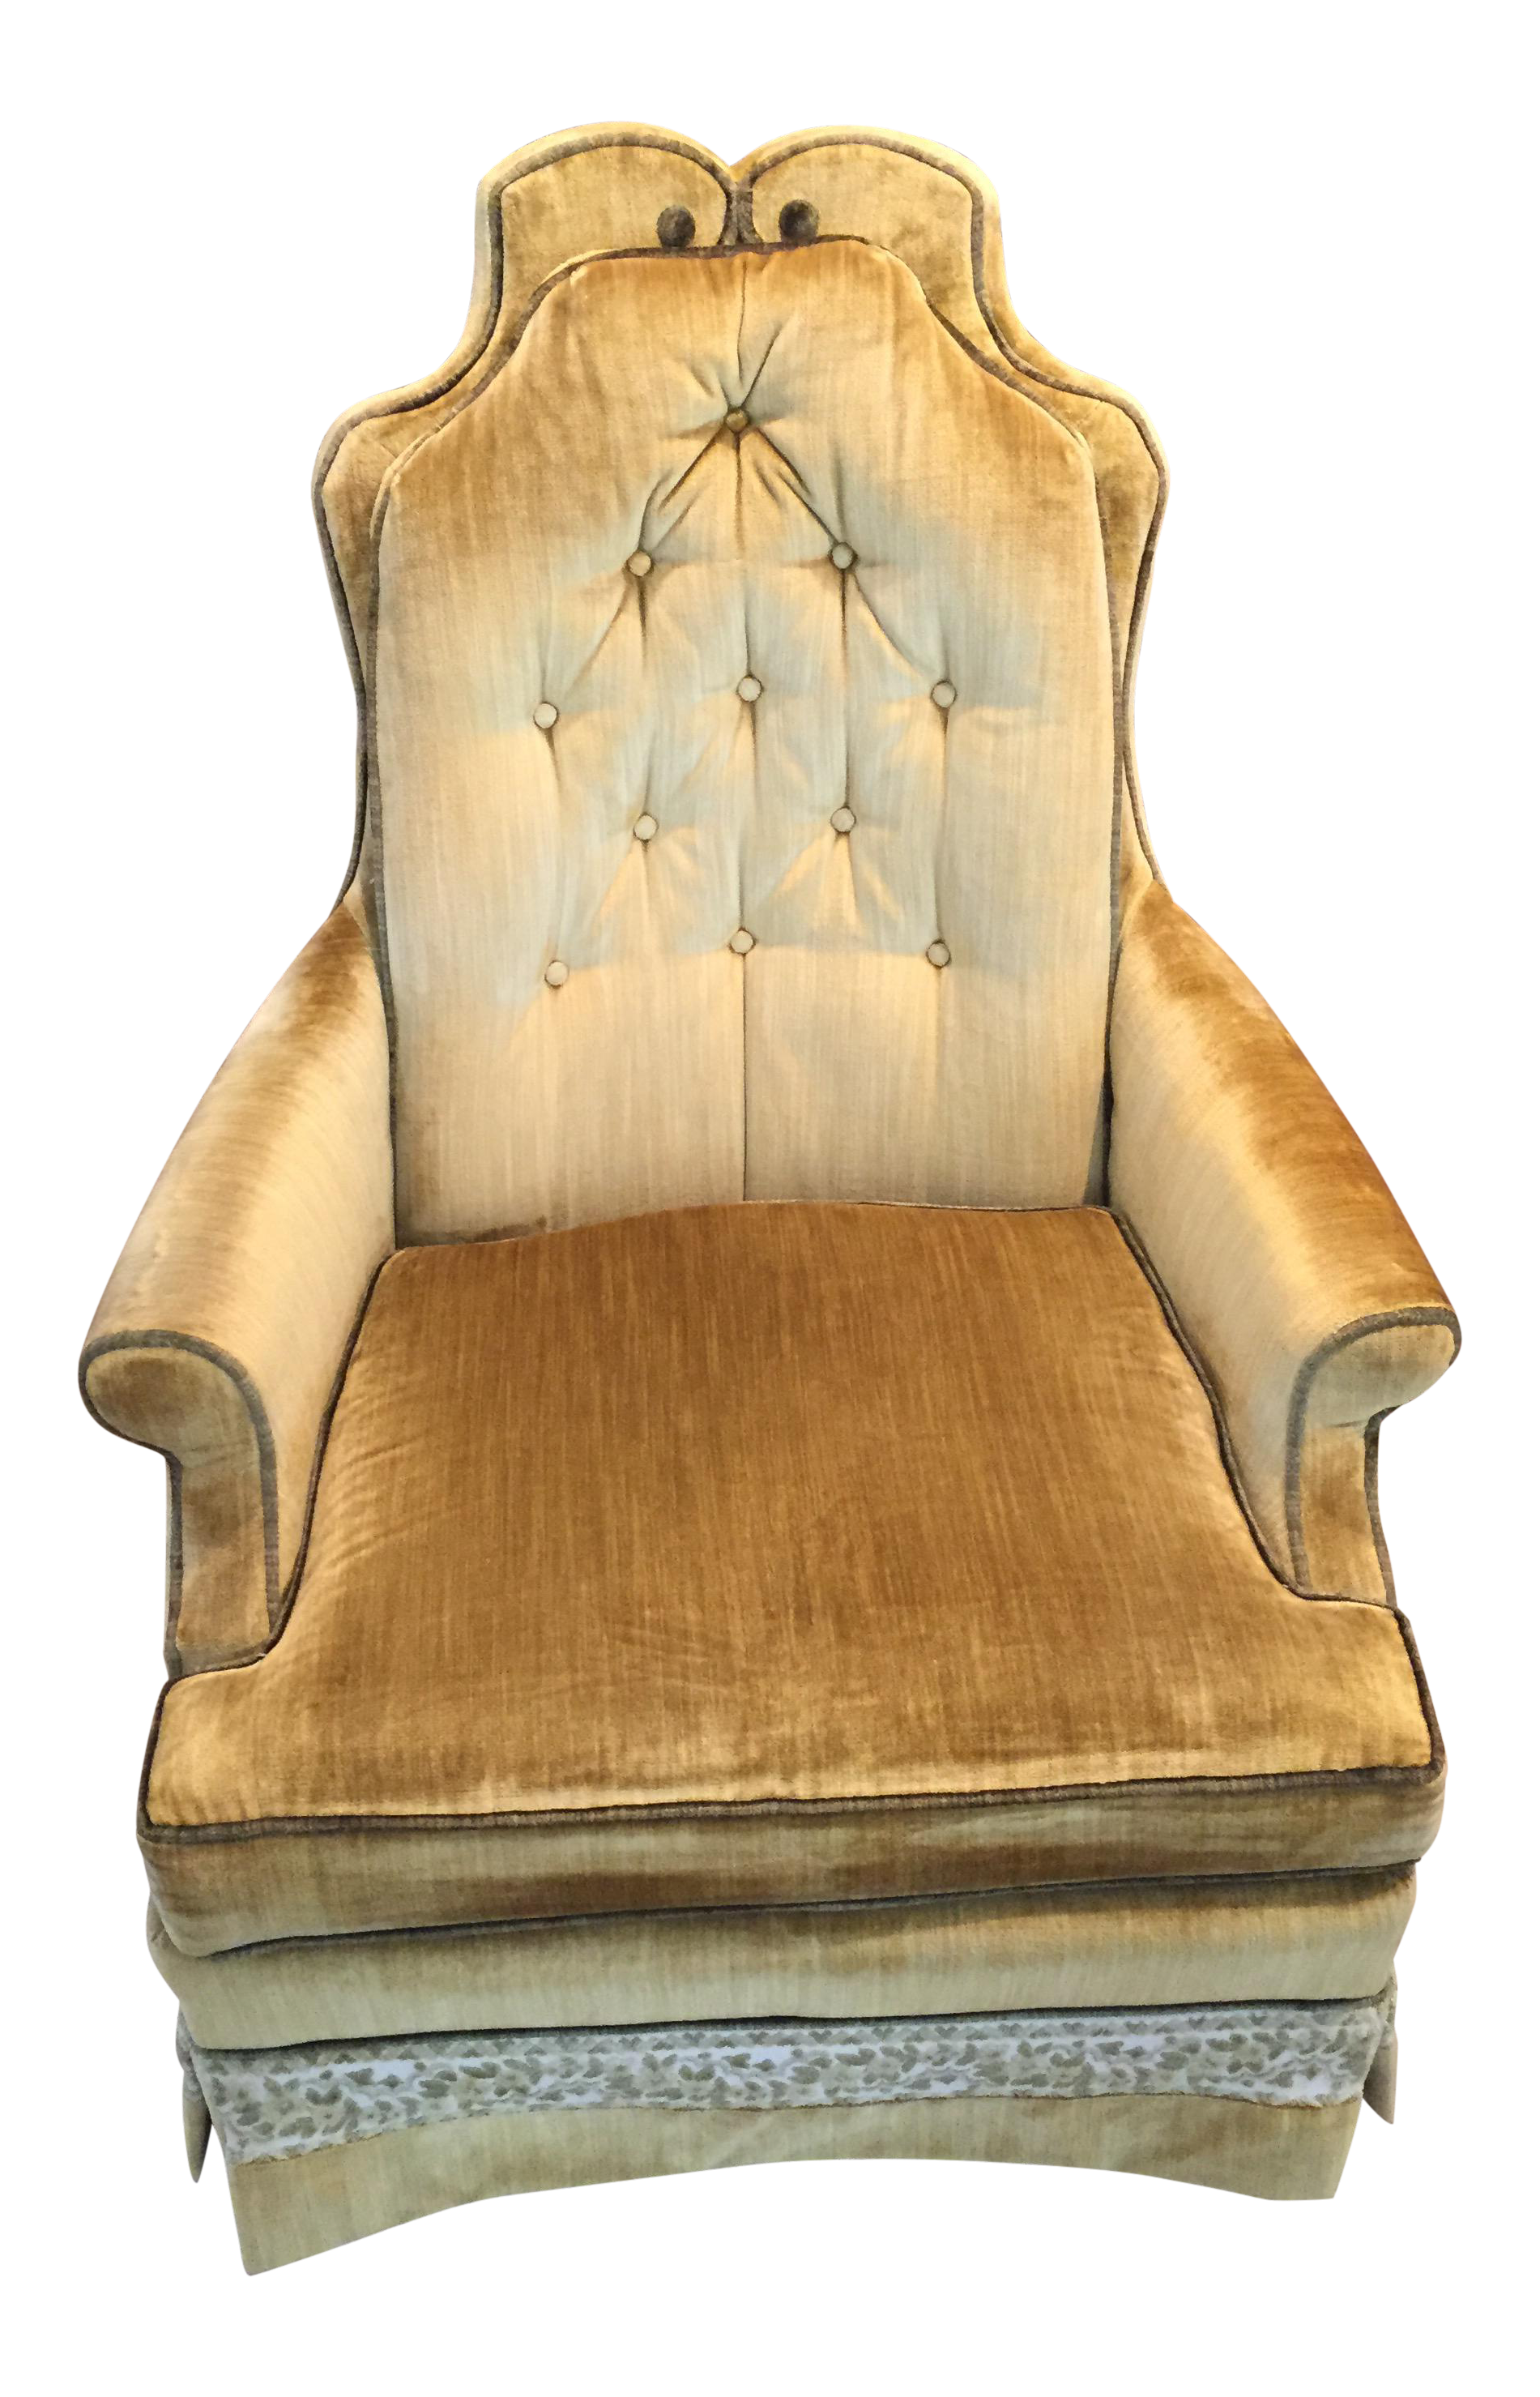 Hollywood Regency Muted Gold U0026 Green Crushed Velvet Chair By Silver Craft    Image 1 Of